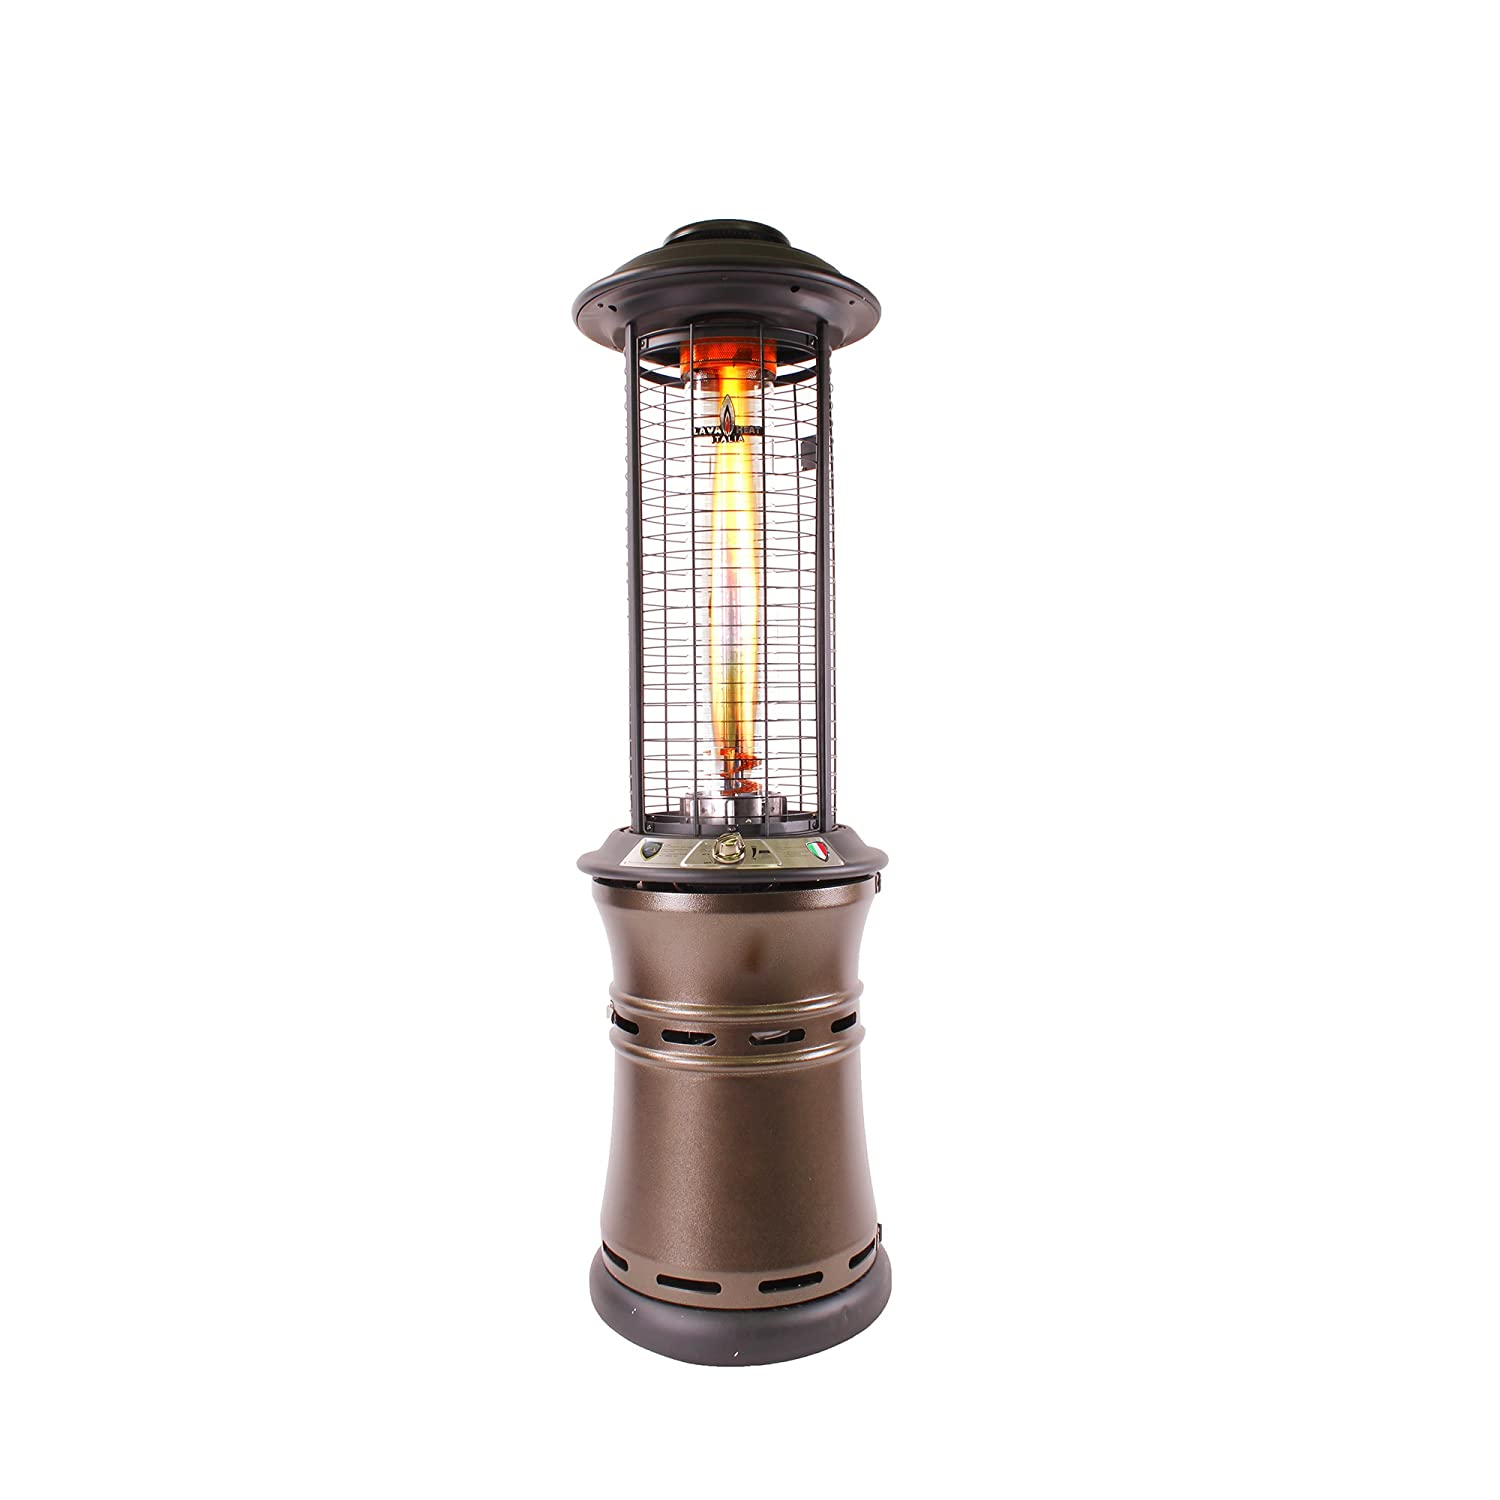 The Lava Heat Italia Ember 51,000 BTU Propane (LP) Patio Heater